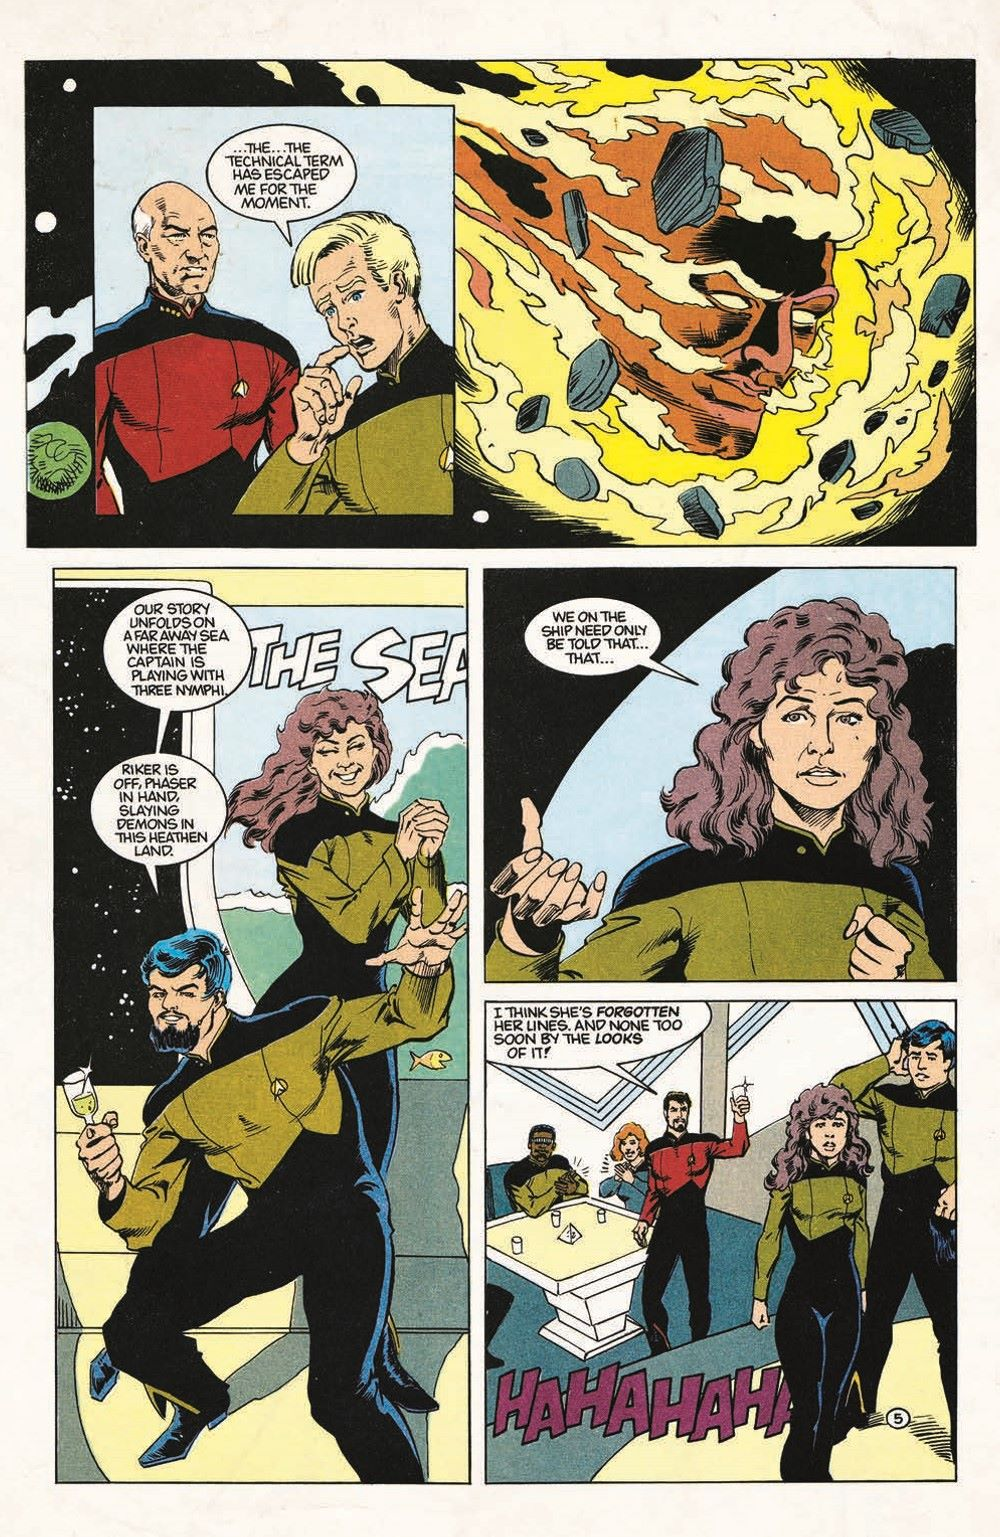 ST_TNG-TheGift-pr-7 ComicList Previews: STAR TREK THE NEXT GENERATION THE GIFT #1